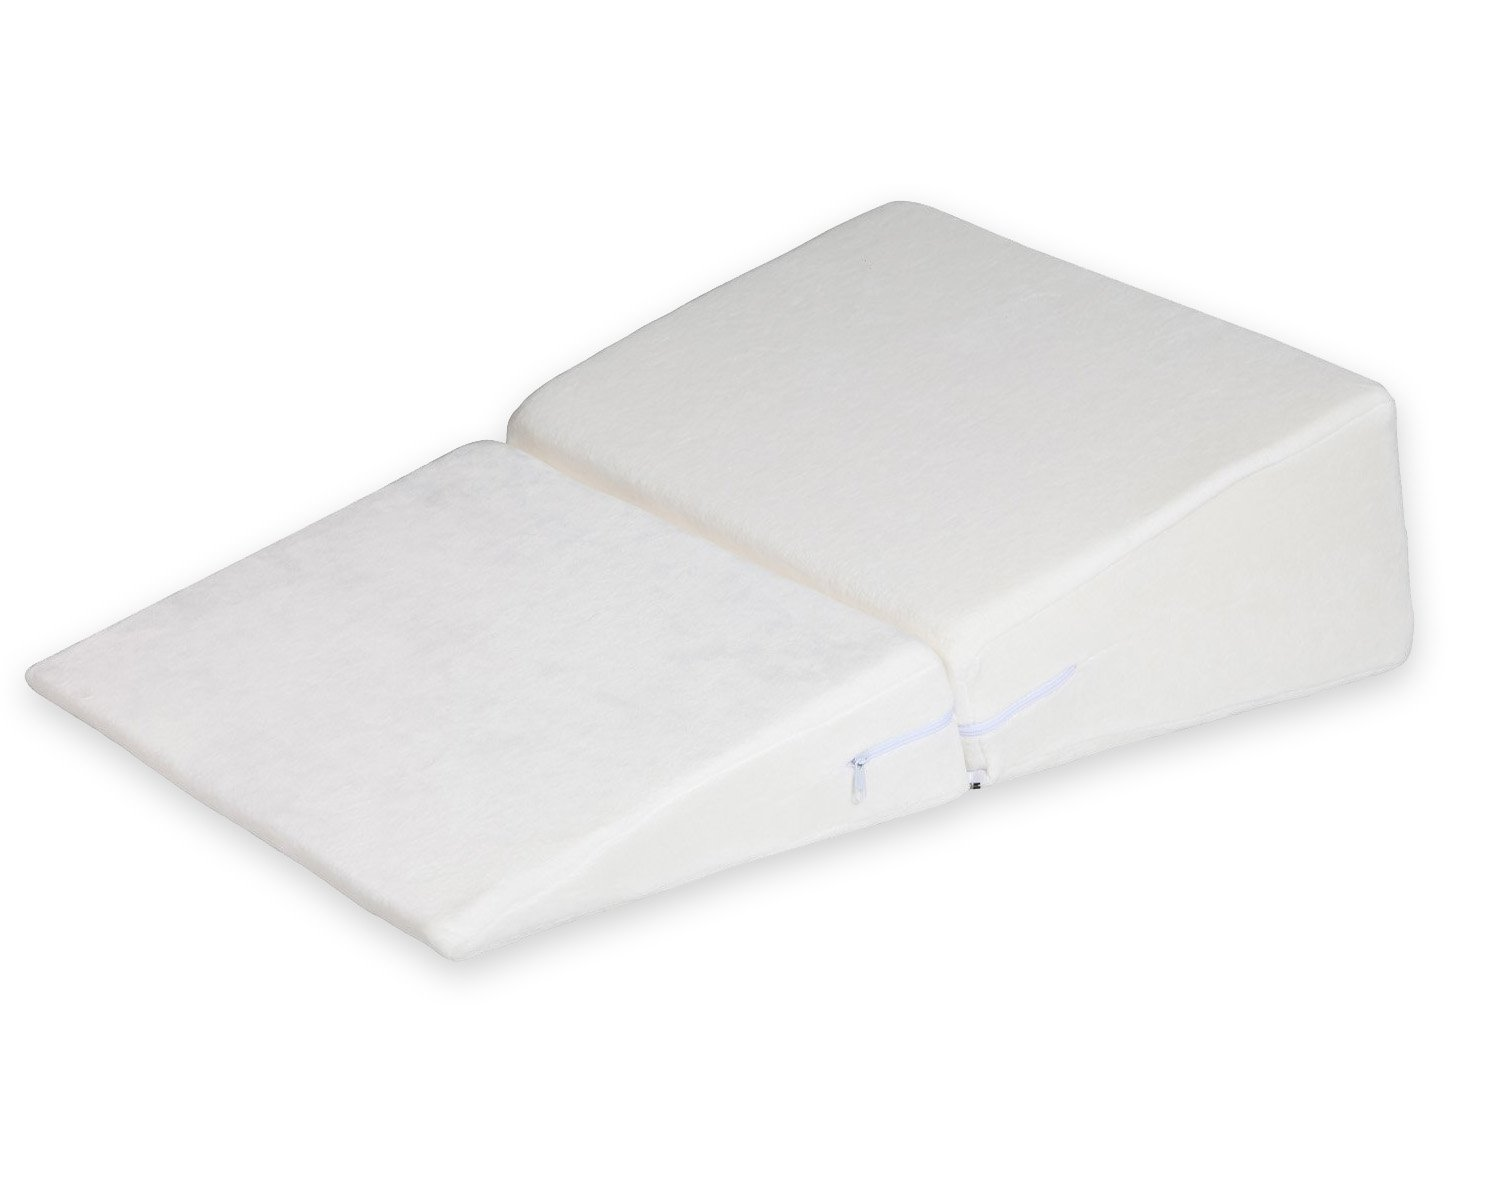 Ang Qi Bed Wedge Pillow with Supportive Foam - Folding - Best for Sleeping, Reading, Rest or Elevation - Breathable and Washable Velvet Cover - White